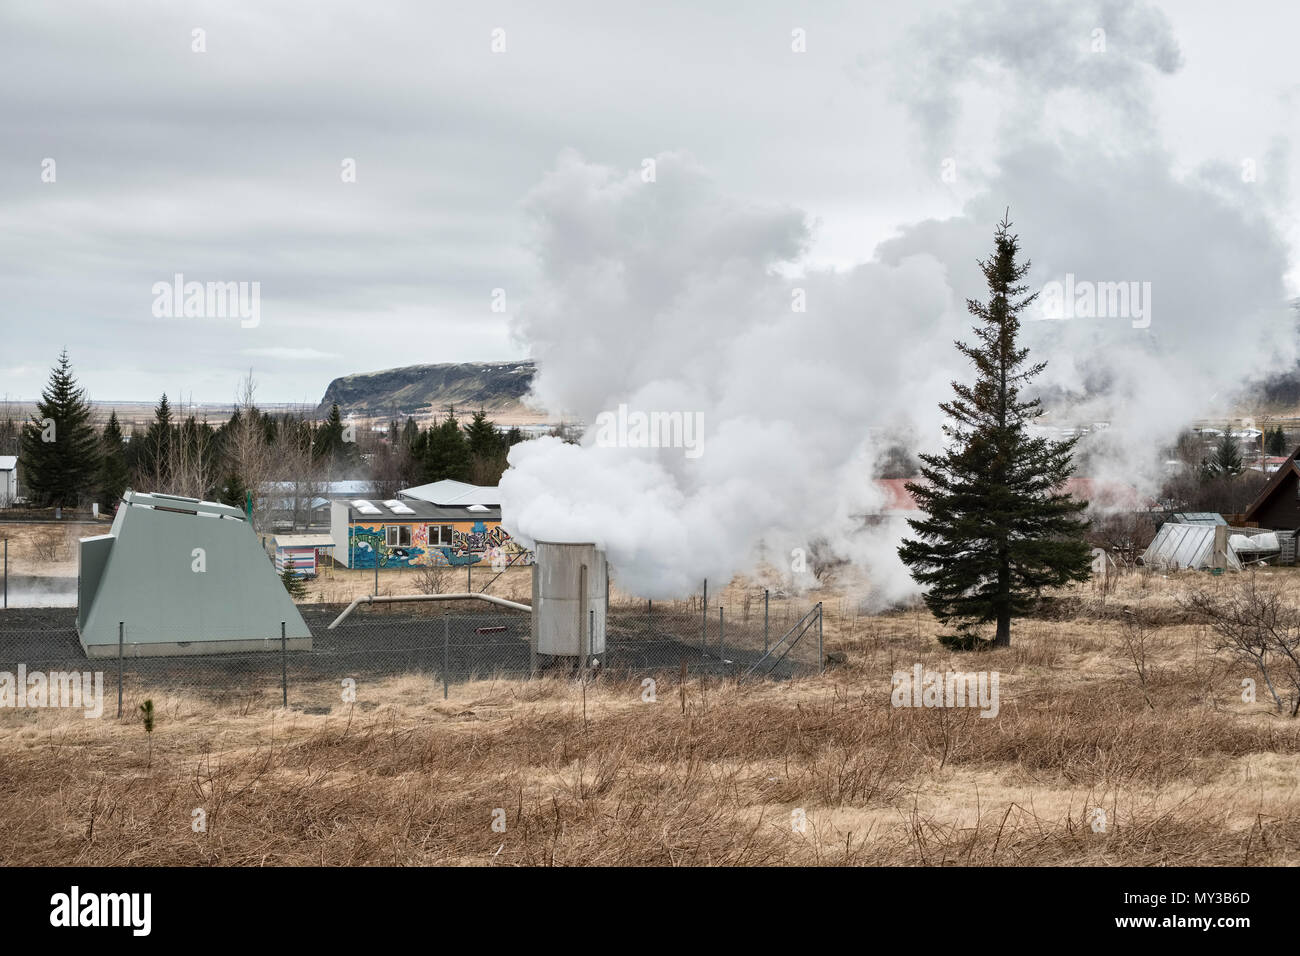 Hveragerði, south Iceland. The town is situated in a highly active geothermal zone and has many naturally heated greenhouses and hot springs - Stock Image